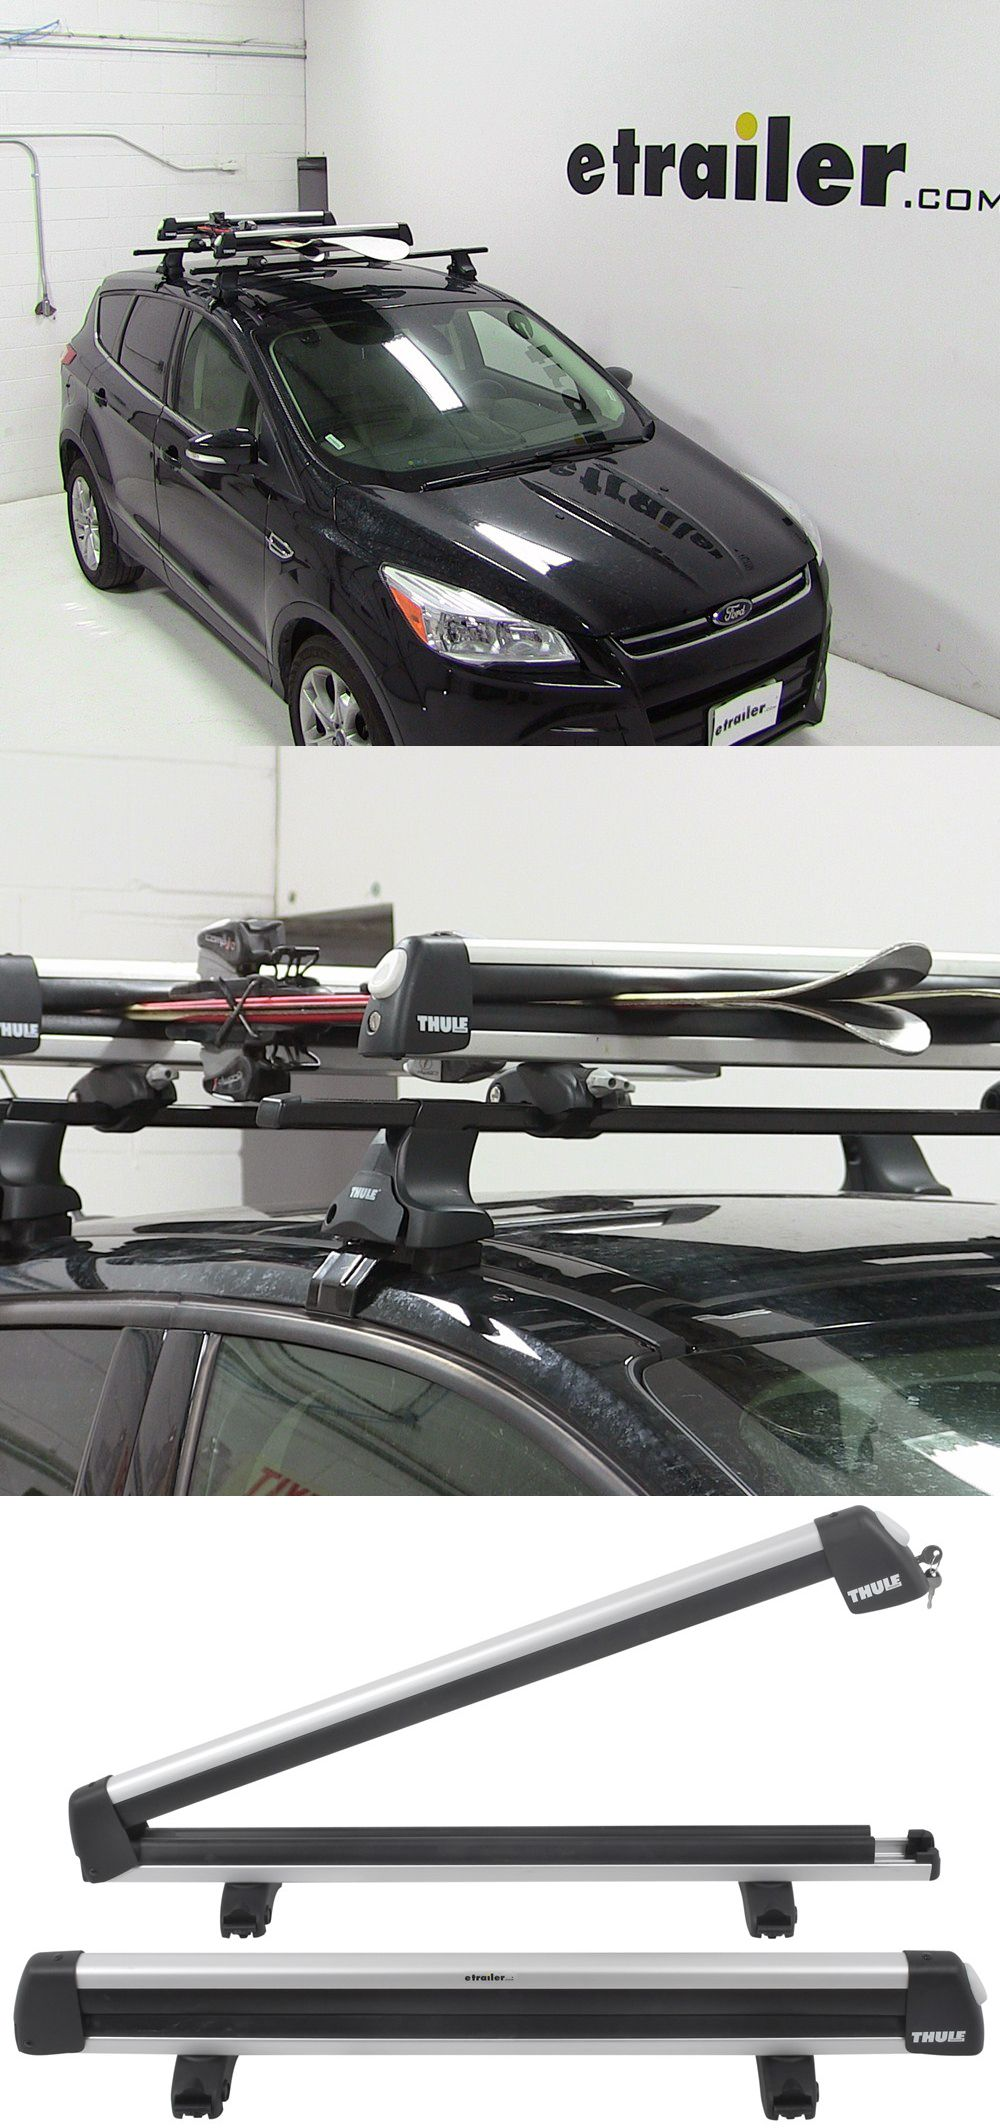 Transport Up To 6 Pairs Of Skis Or 4 Snowboards With This Durable Aluminum Carrier Mounts To Most Roof Rack Crossbars With U Ski Rack Ski And Snowboard Skiing